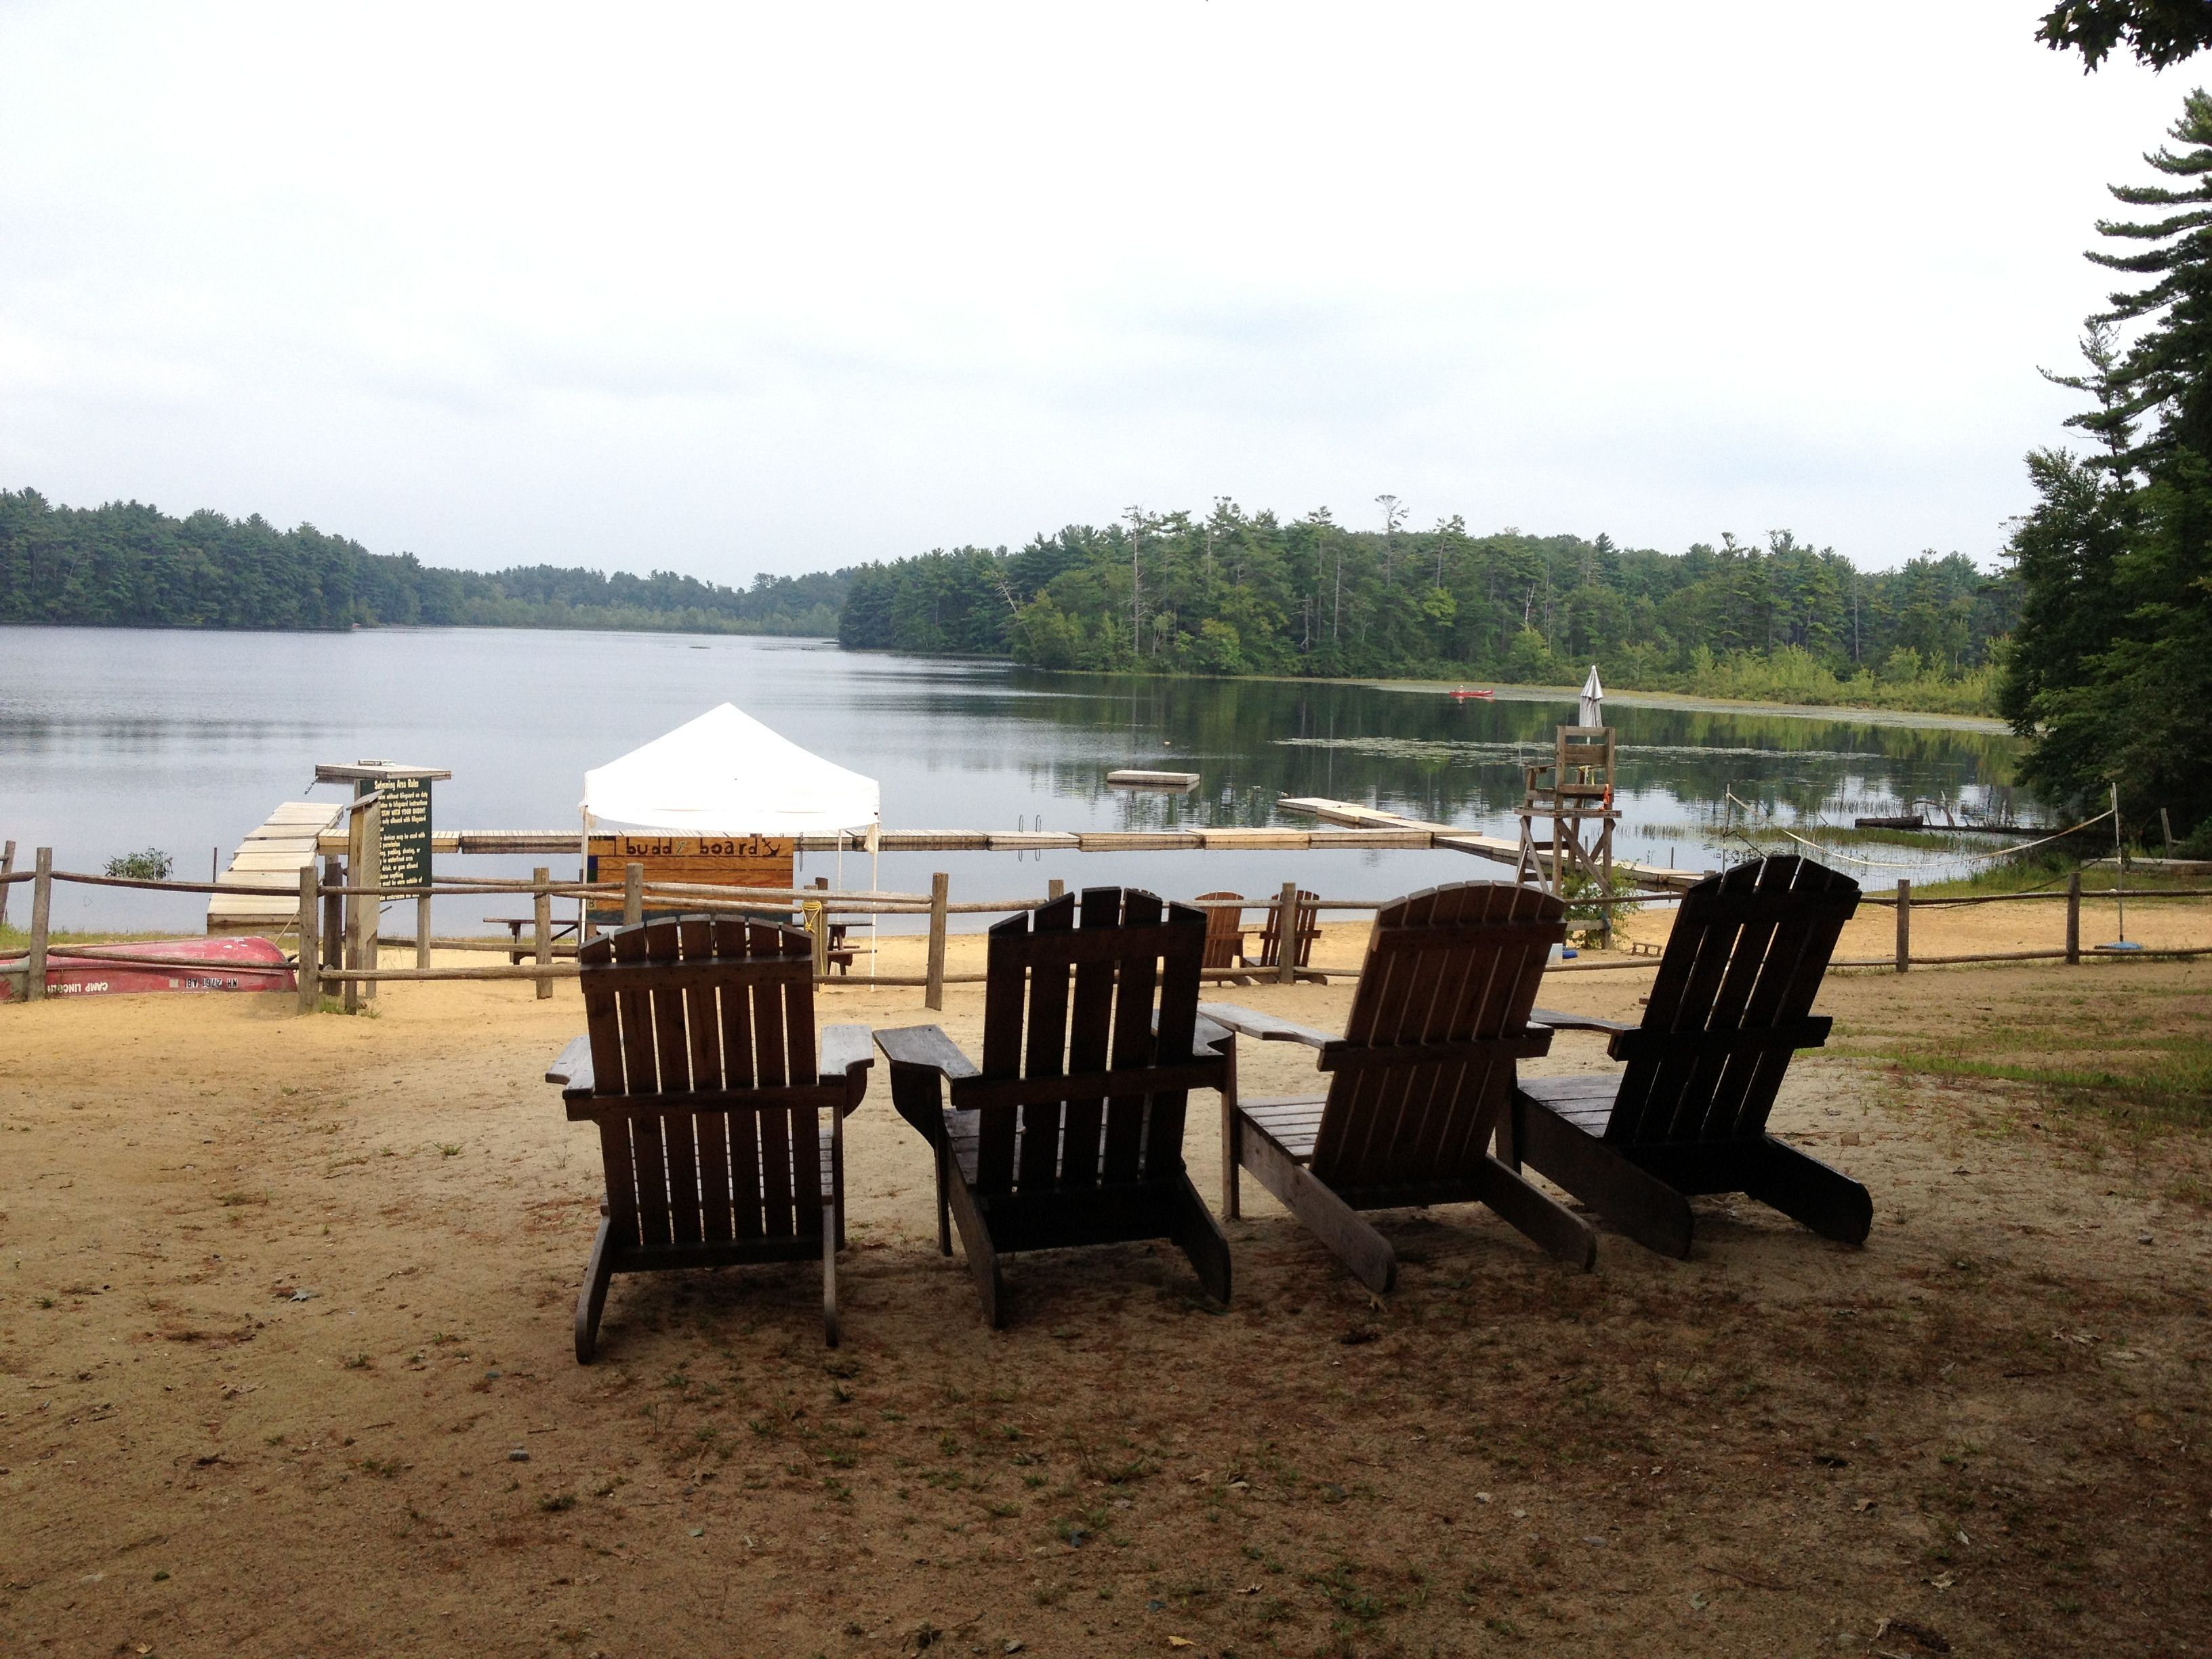 Adirondack chairs outdoor decor outdoor tables outdoor